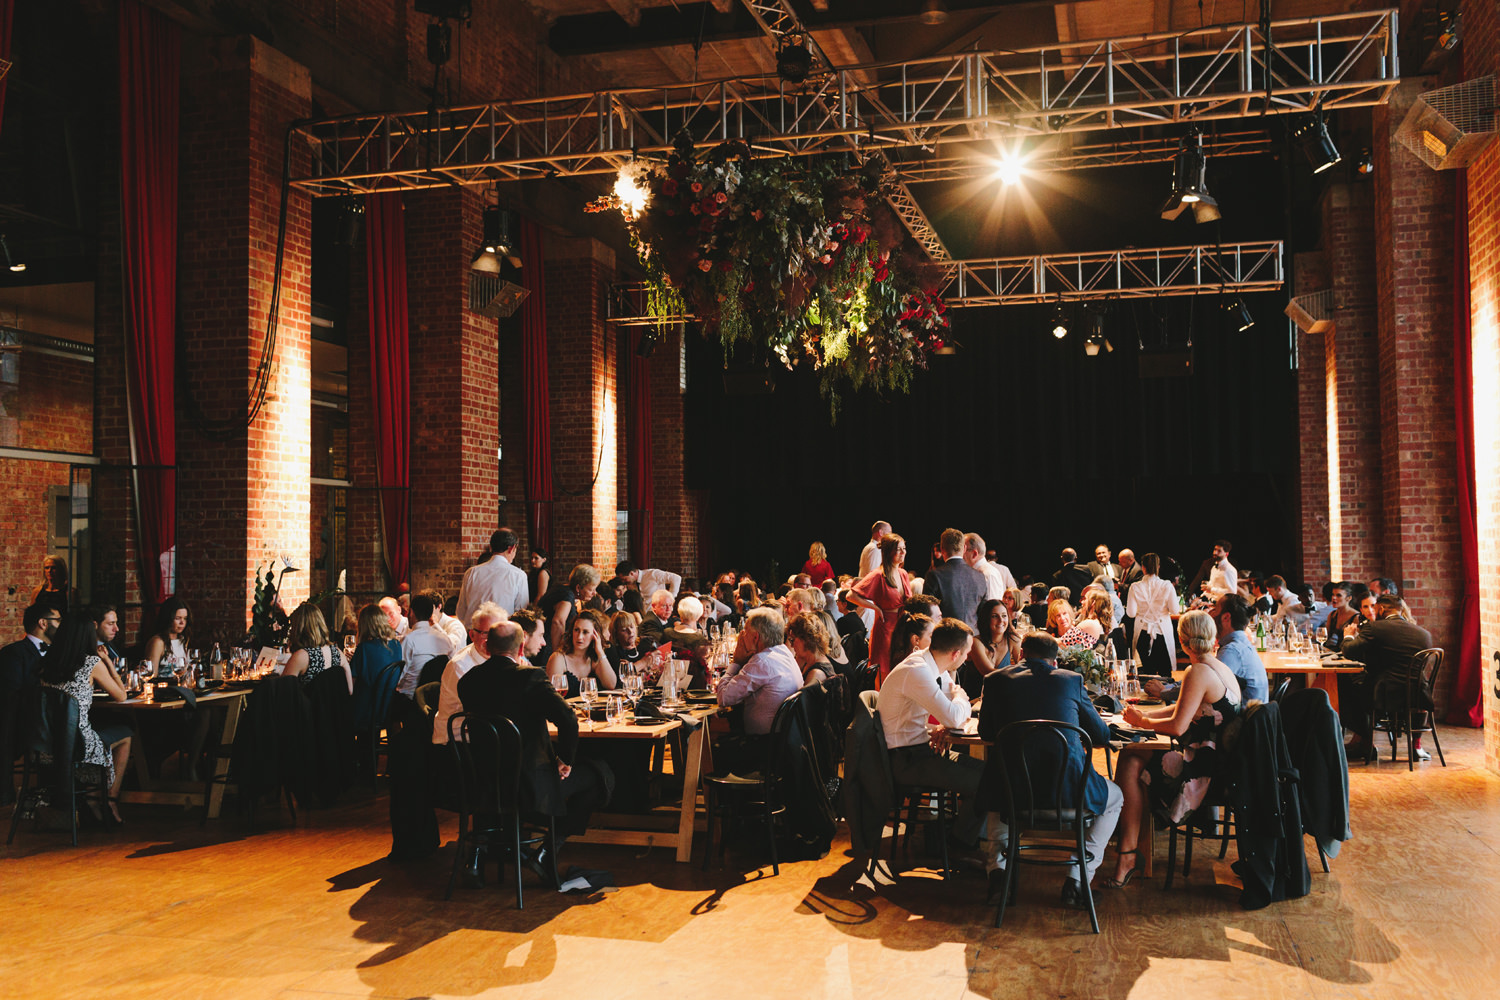 Warehouse_Wedding_Melbourne_Navin_Elly094.JPG